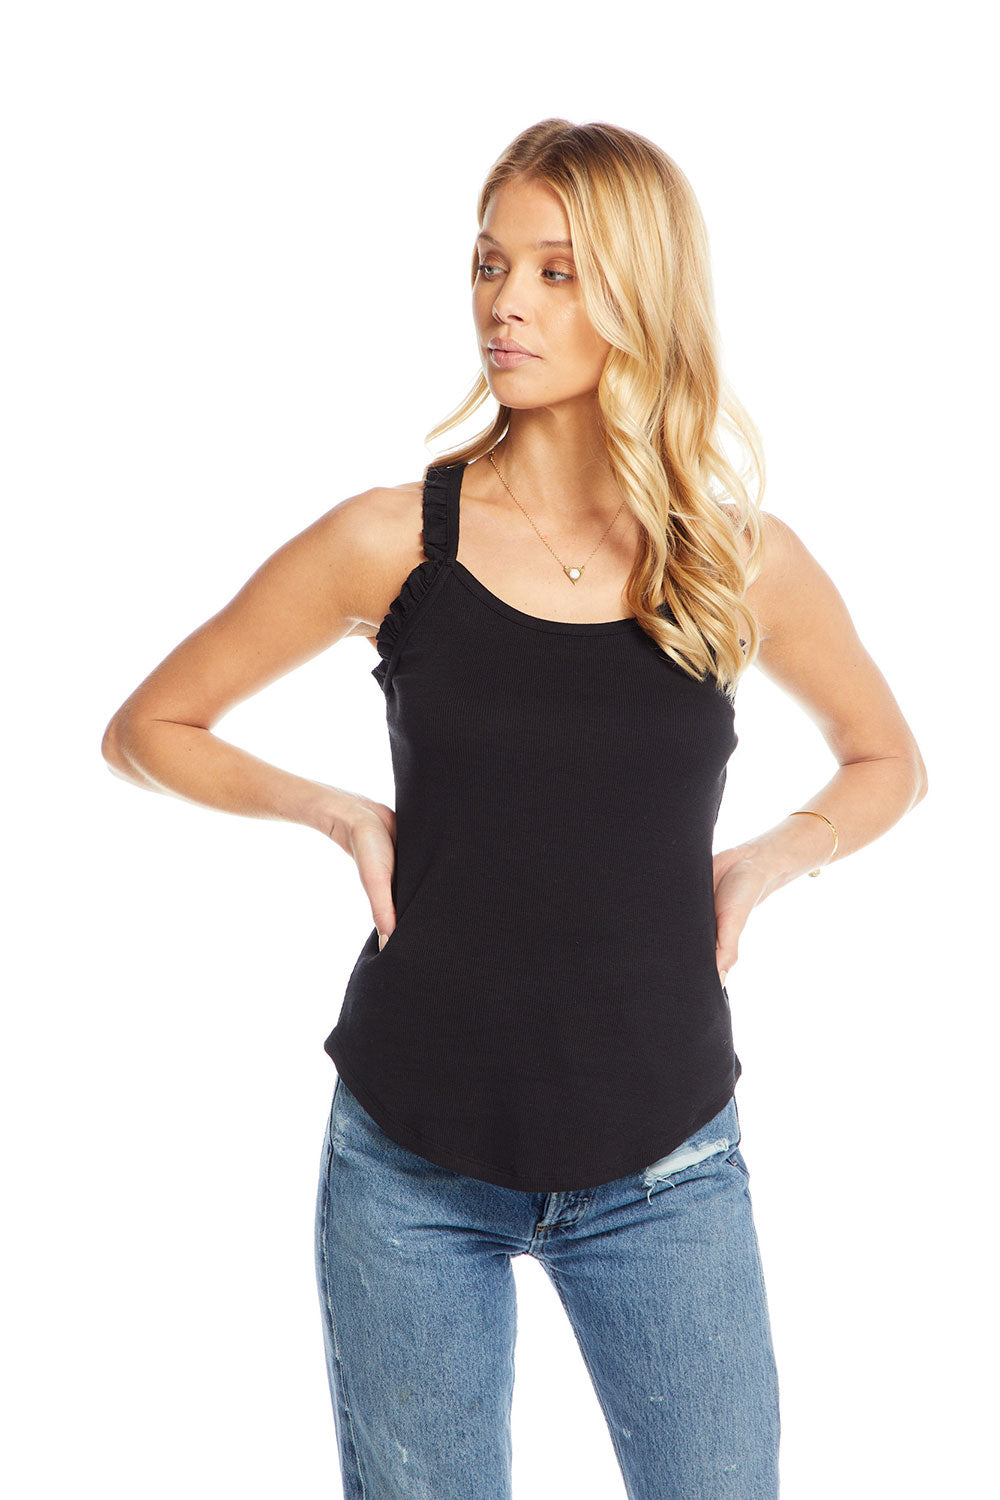 Vintage Rib Ruffle Scoop Strappy Back Shirttail Tank WOMENS chaserbrand4.myshopify.com